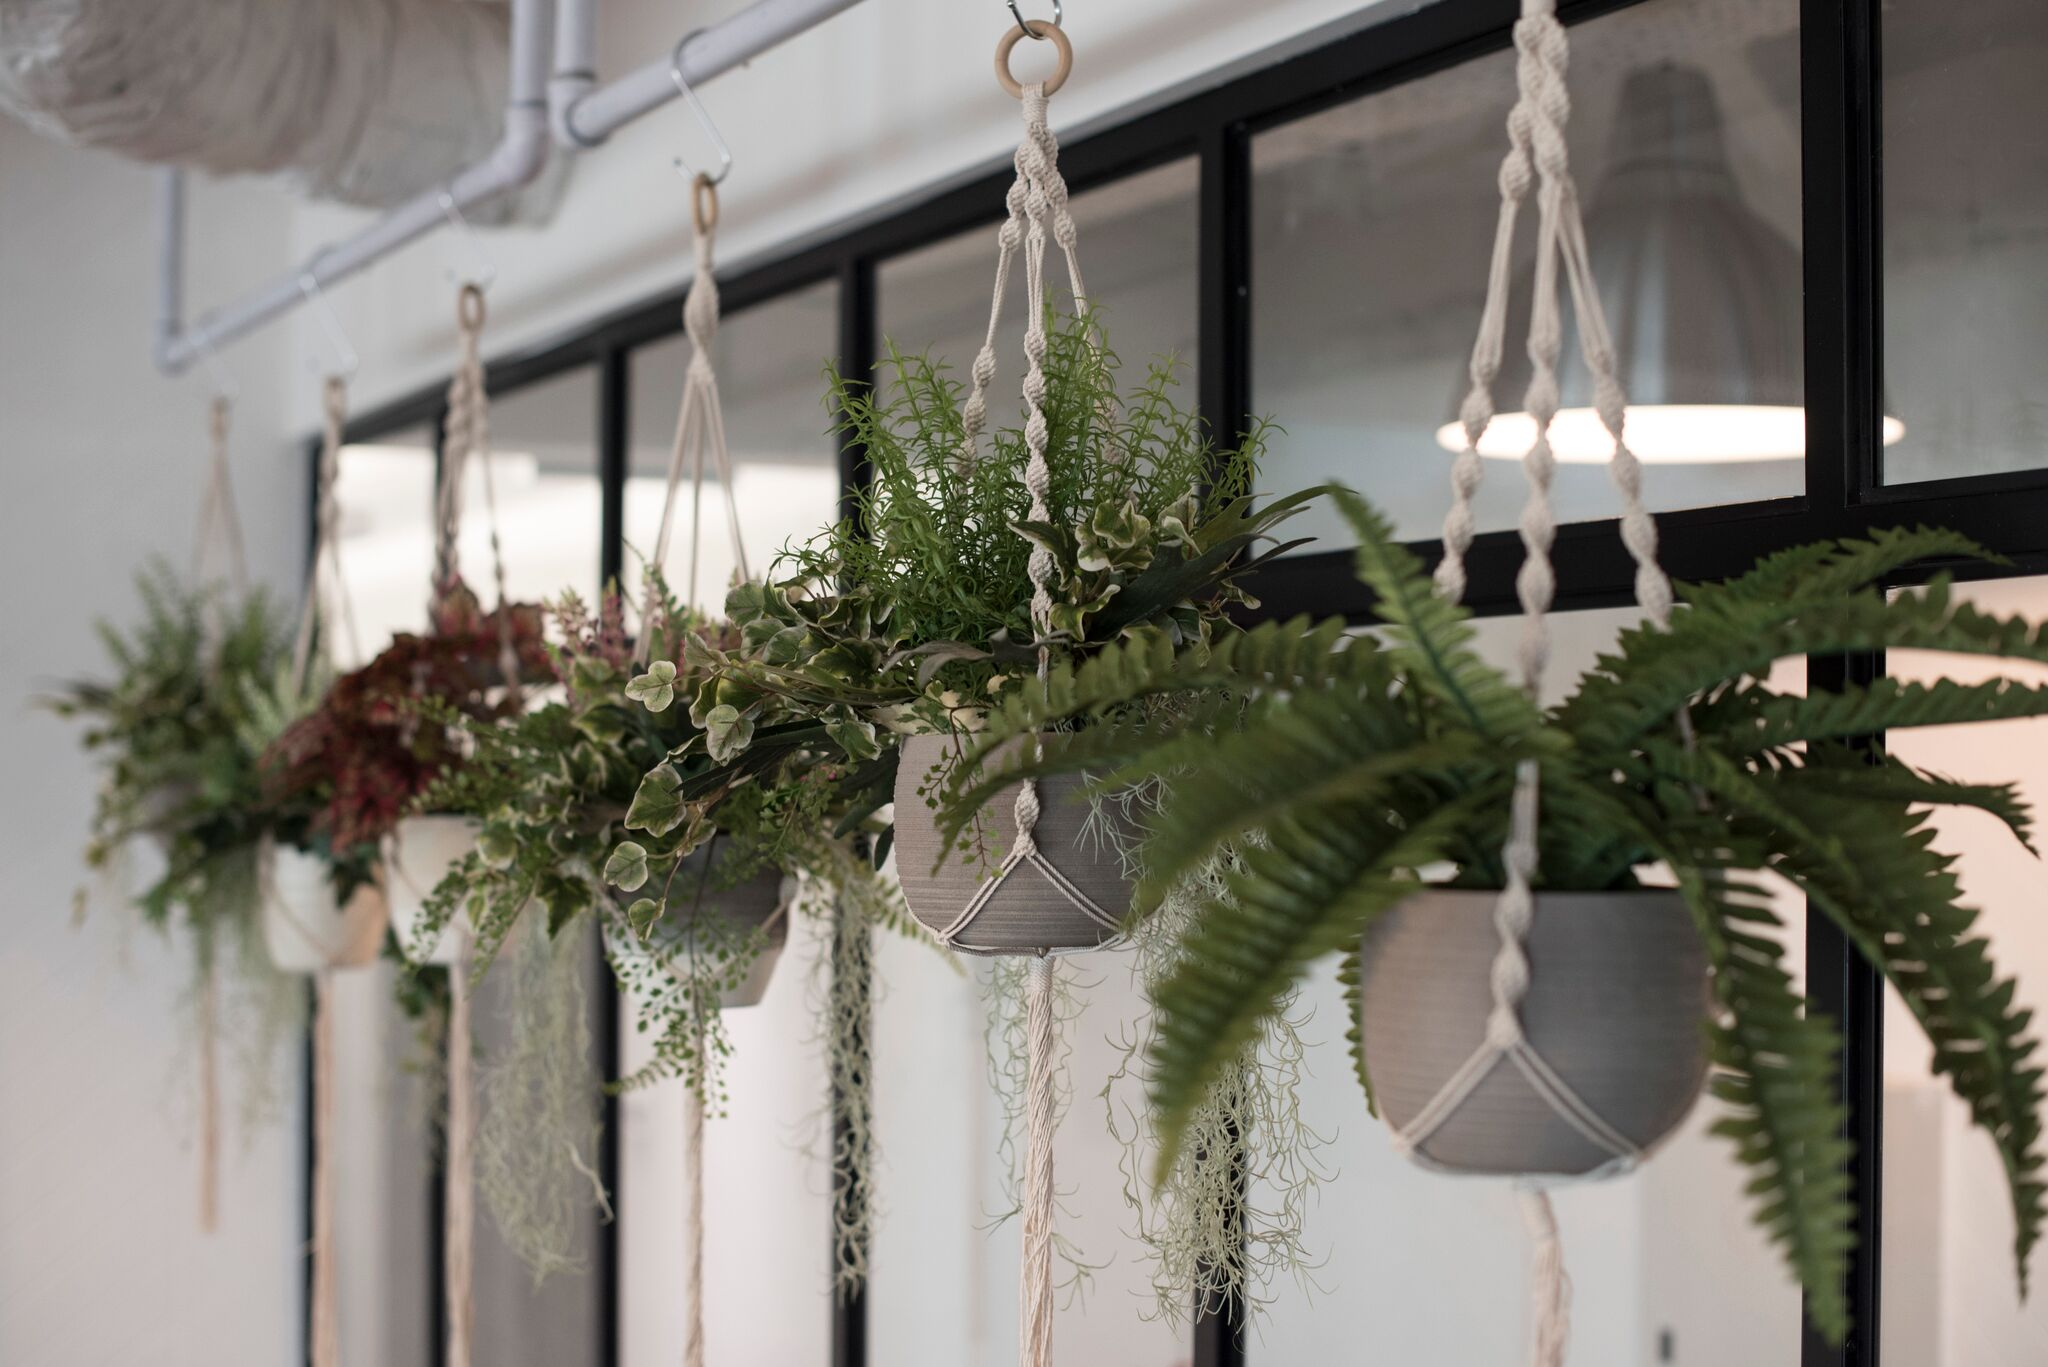 Hanging macrame planters are used as part of decorative aesthetic, creating a new balance to the composition of space.